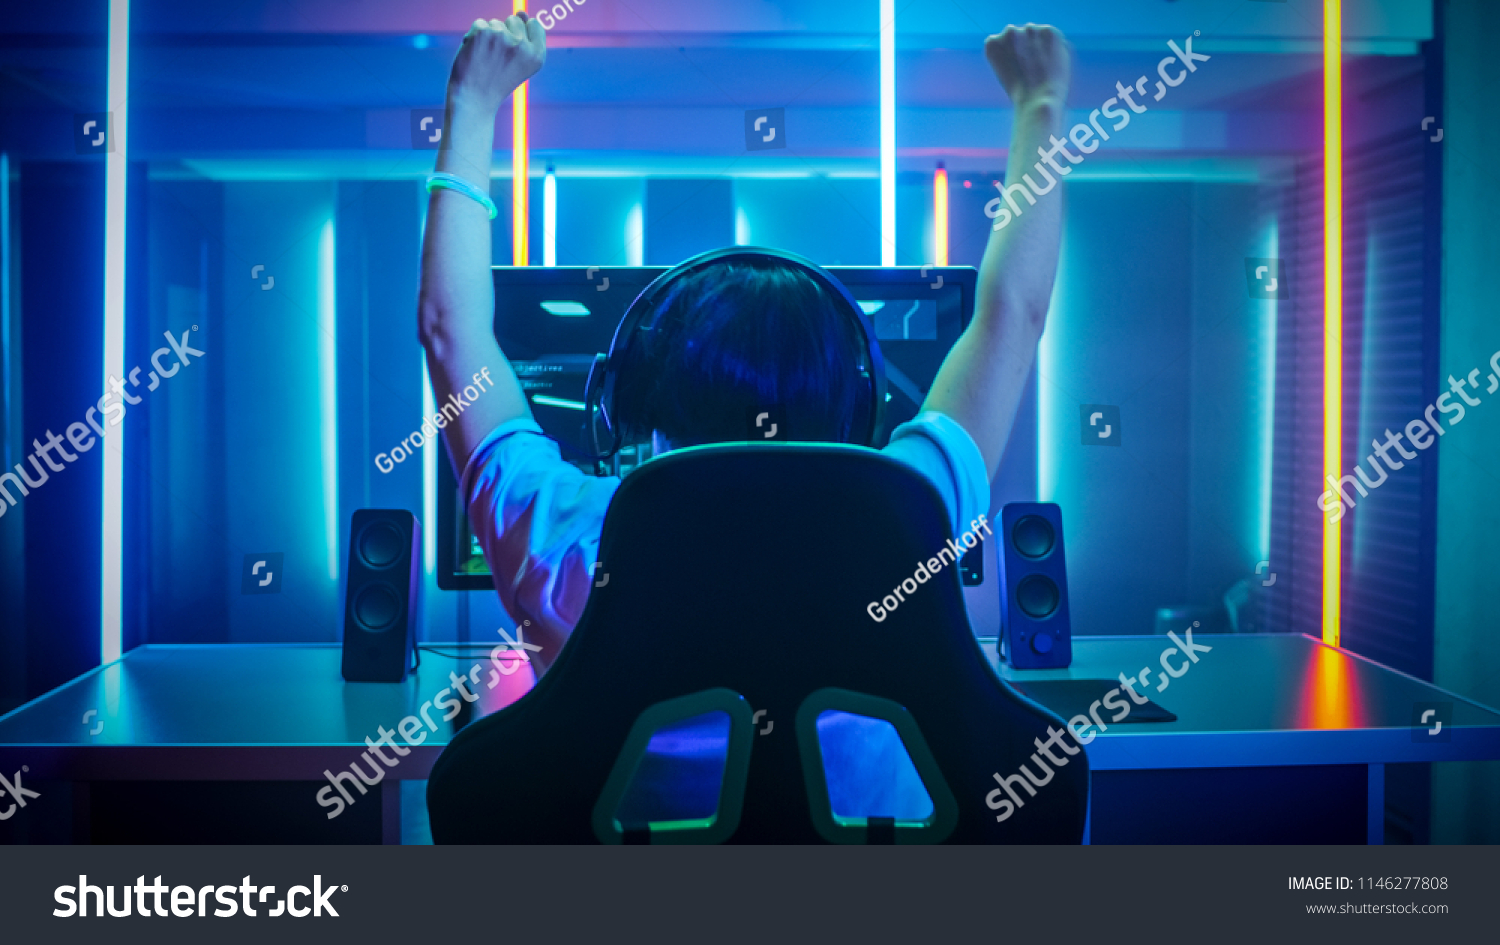 Professional Gamer Playing and Winning in First-Person Shooter Online Video Game on His Personal Computer. Footage Fade out into Bokeh. Room Lit by Neon Lights in Retro Arcade Style.Cyber Championship #1146277808